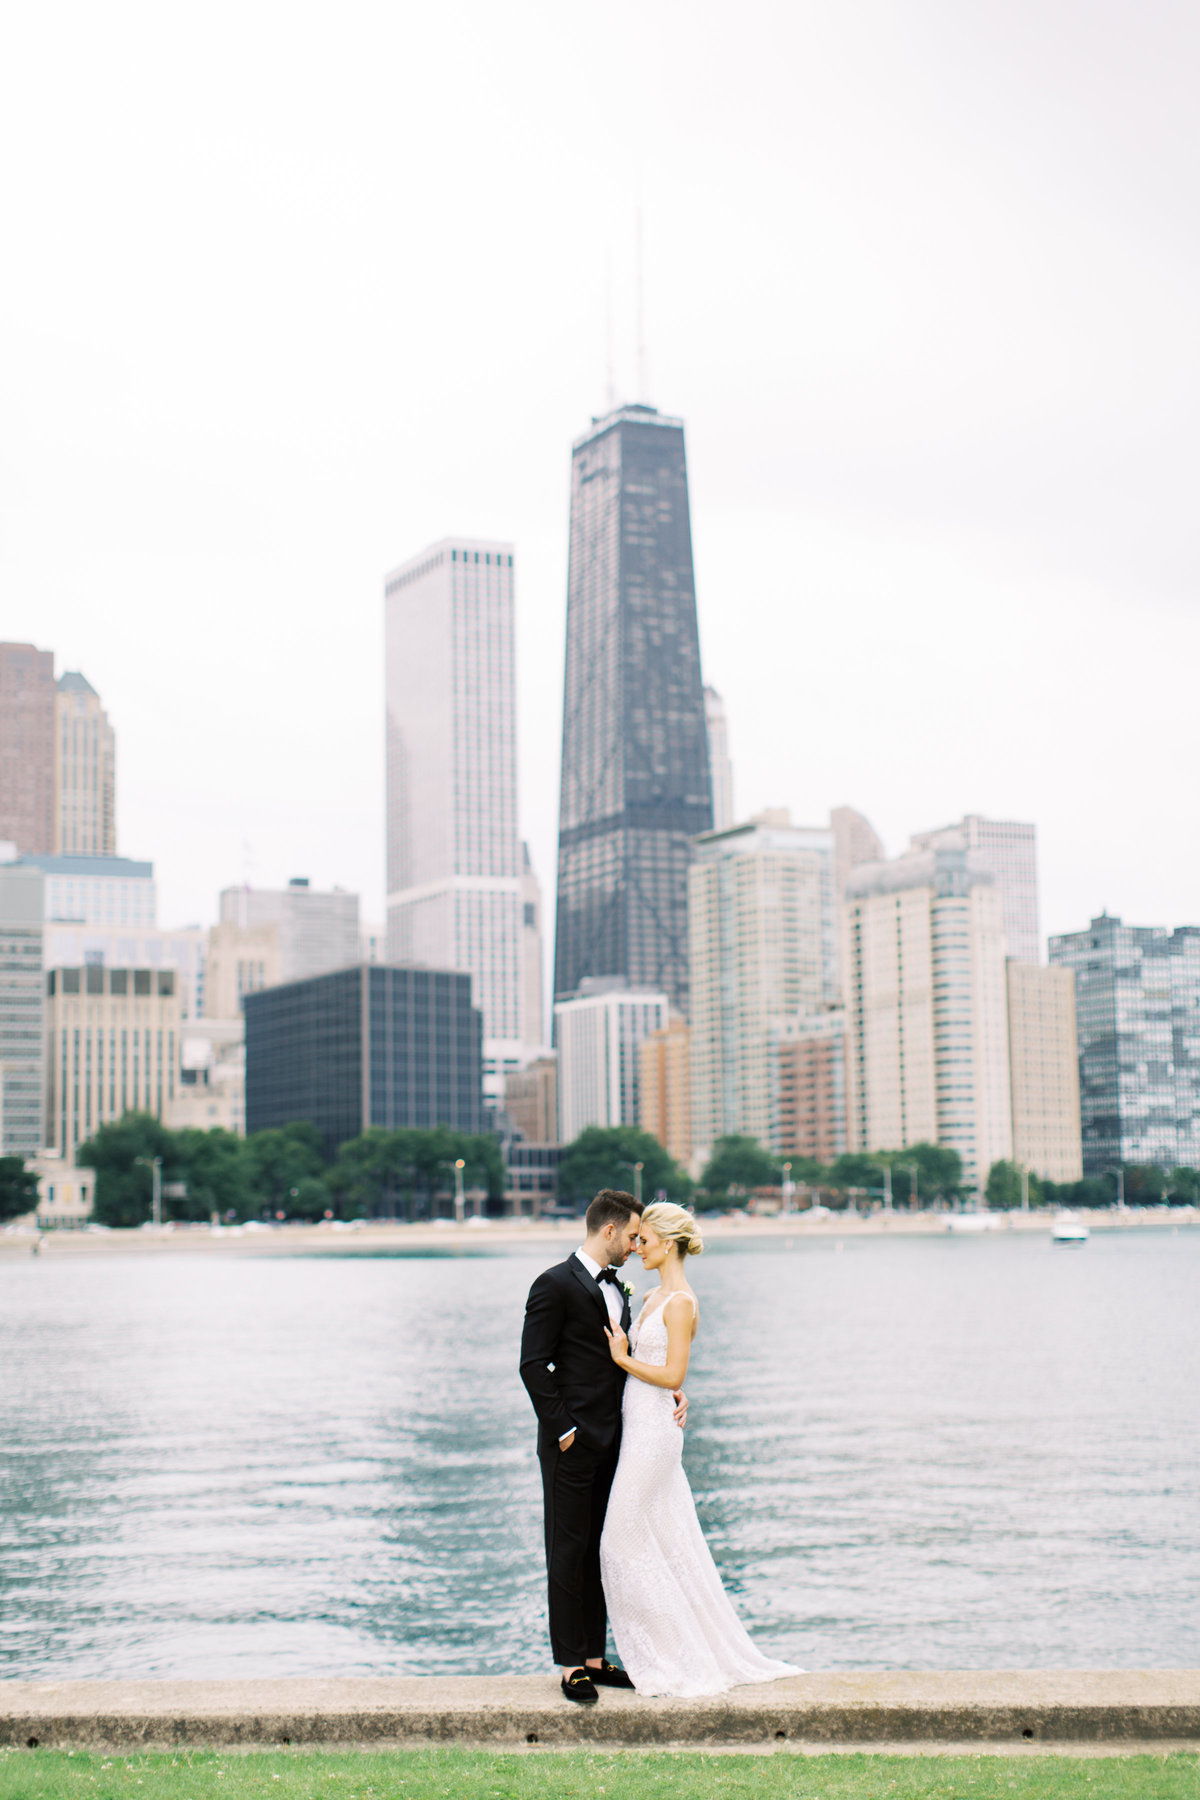 BailieTyler_Wedding_September212019_498